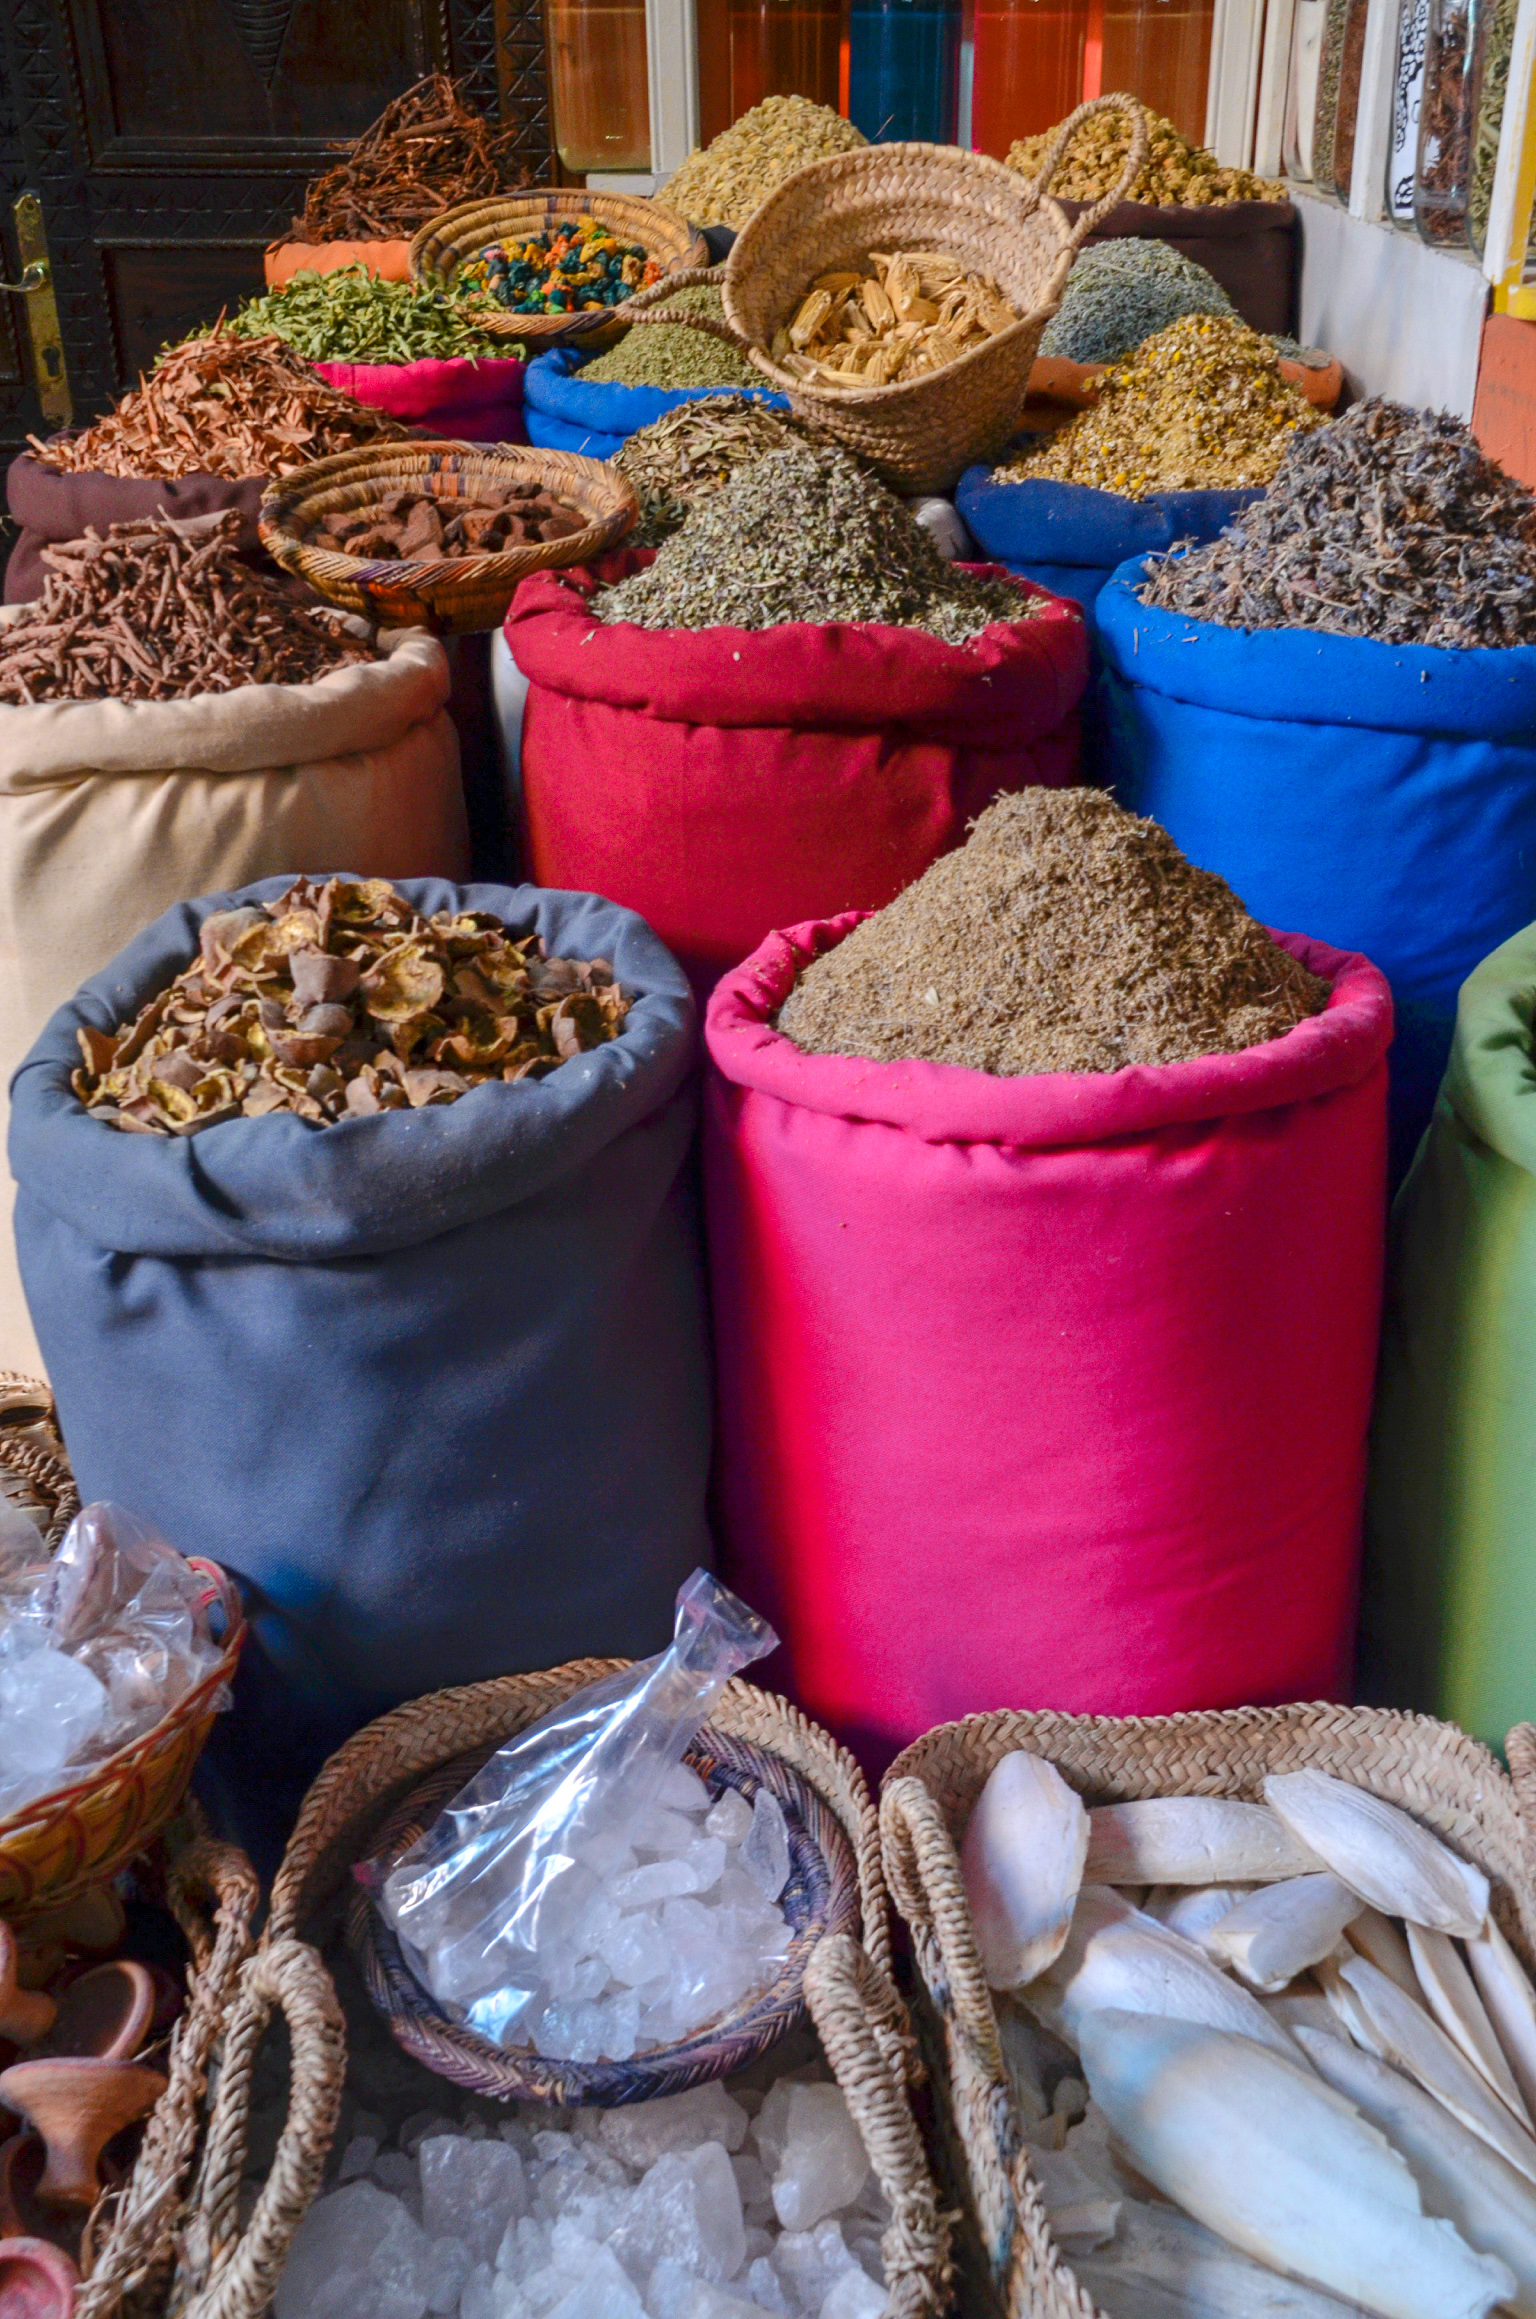 A mixture of dried teas and spices alongside with crystals